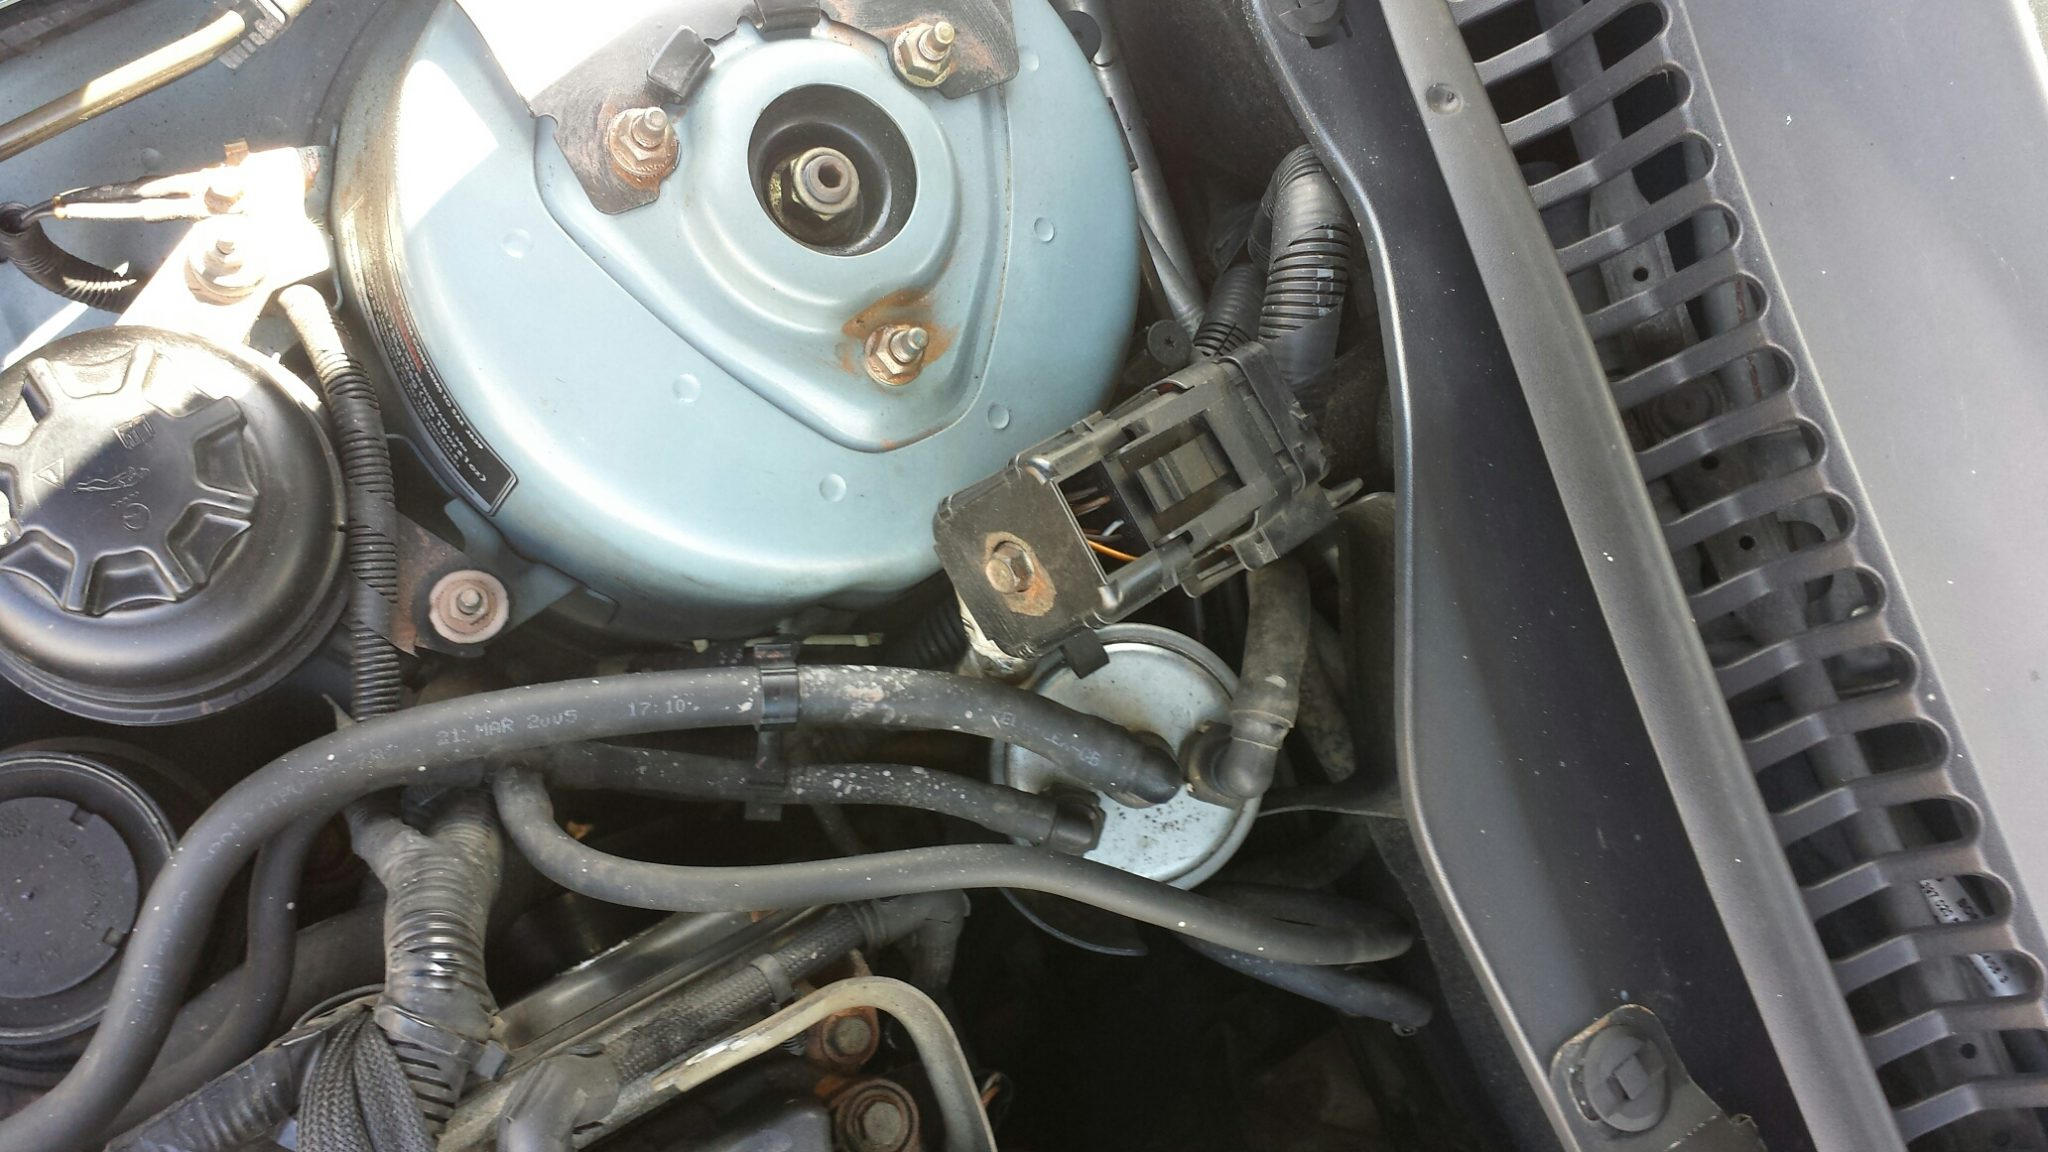 Jaguar X Type Fuel Filter Changed Now Engine Wont Start Solved Filters For Diesel Engines Image Old